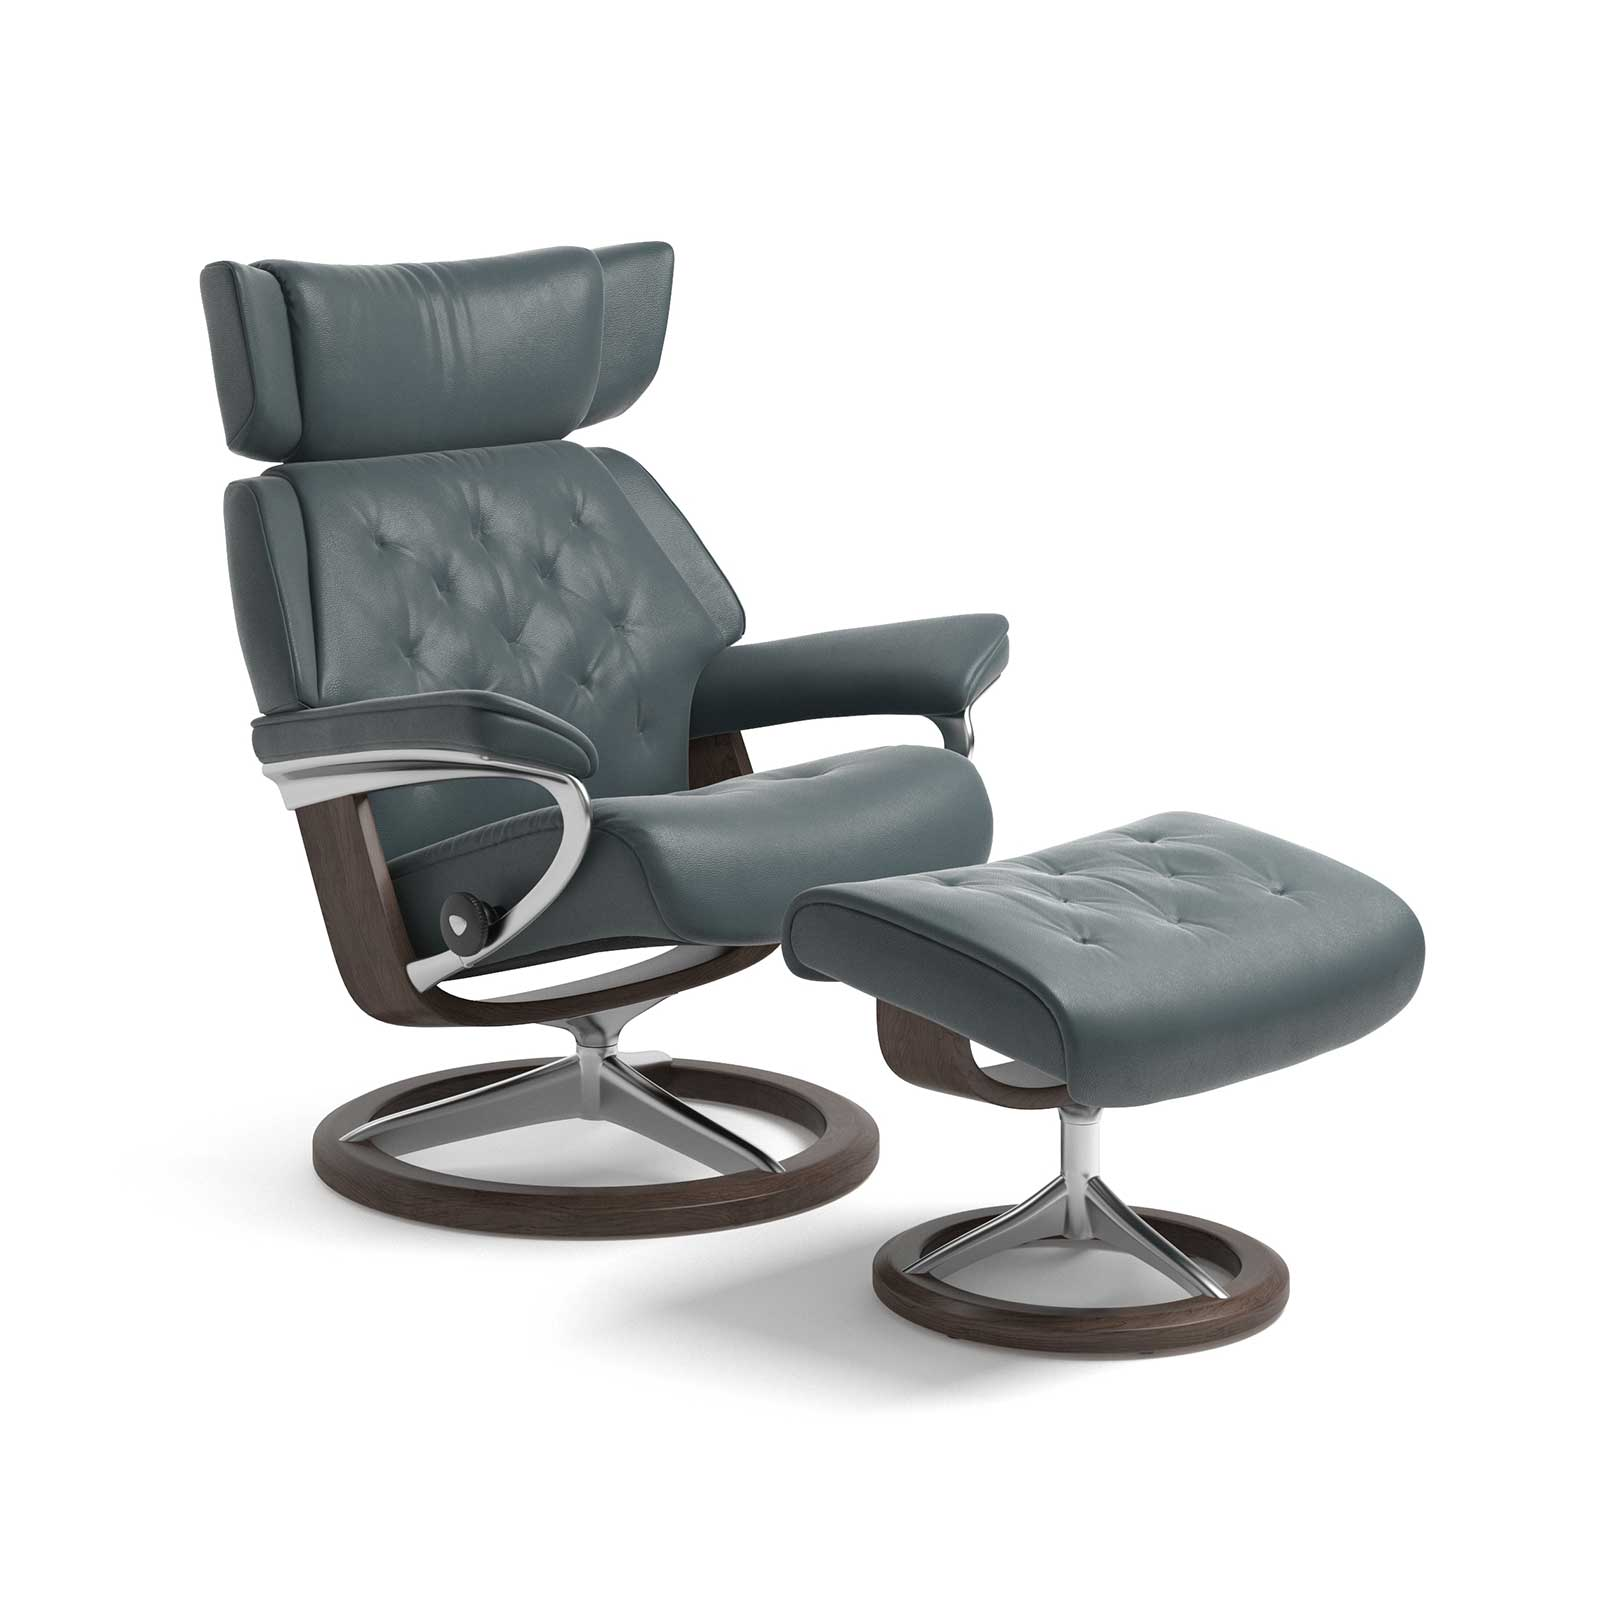 Stressless Sessel Berlin Stressless Sessel Skyline Cori Petrol Signature Mit Hocker